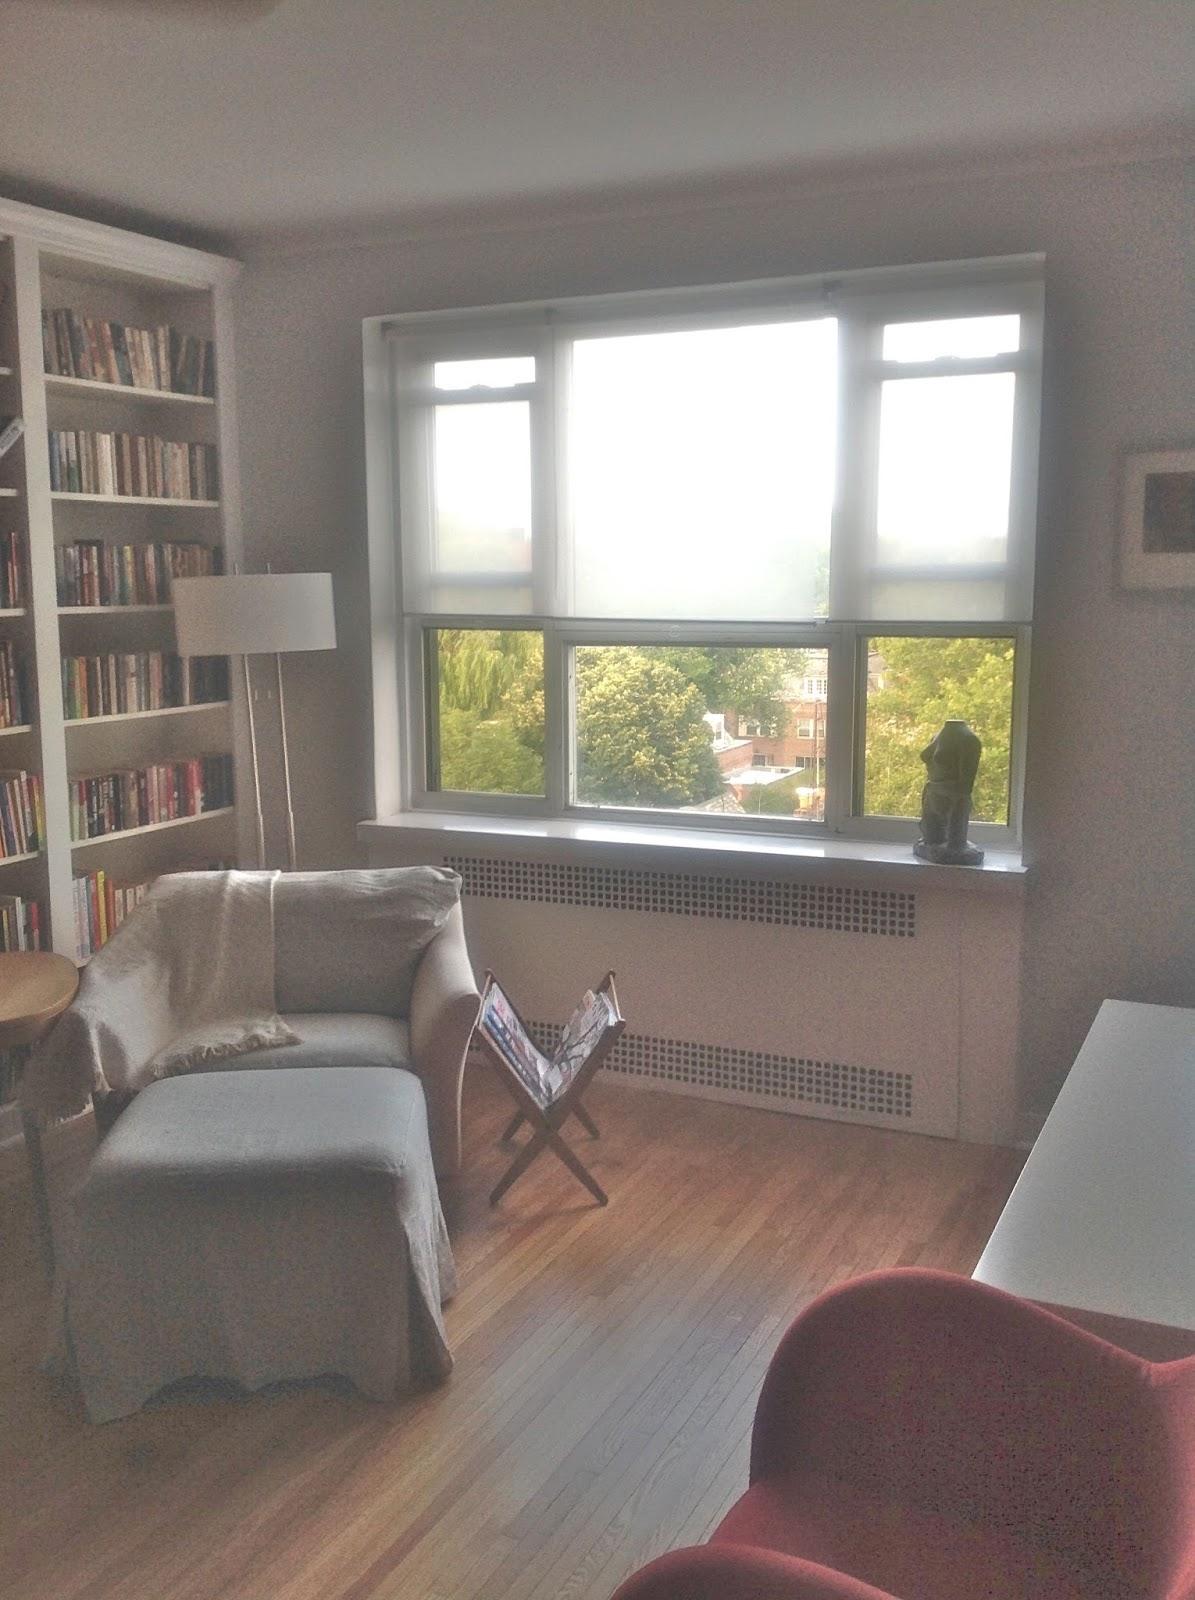 Ikea Hack: Cutting SKOGSKLÖVER and ENJE Roller Blinds to Fit Your Windows